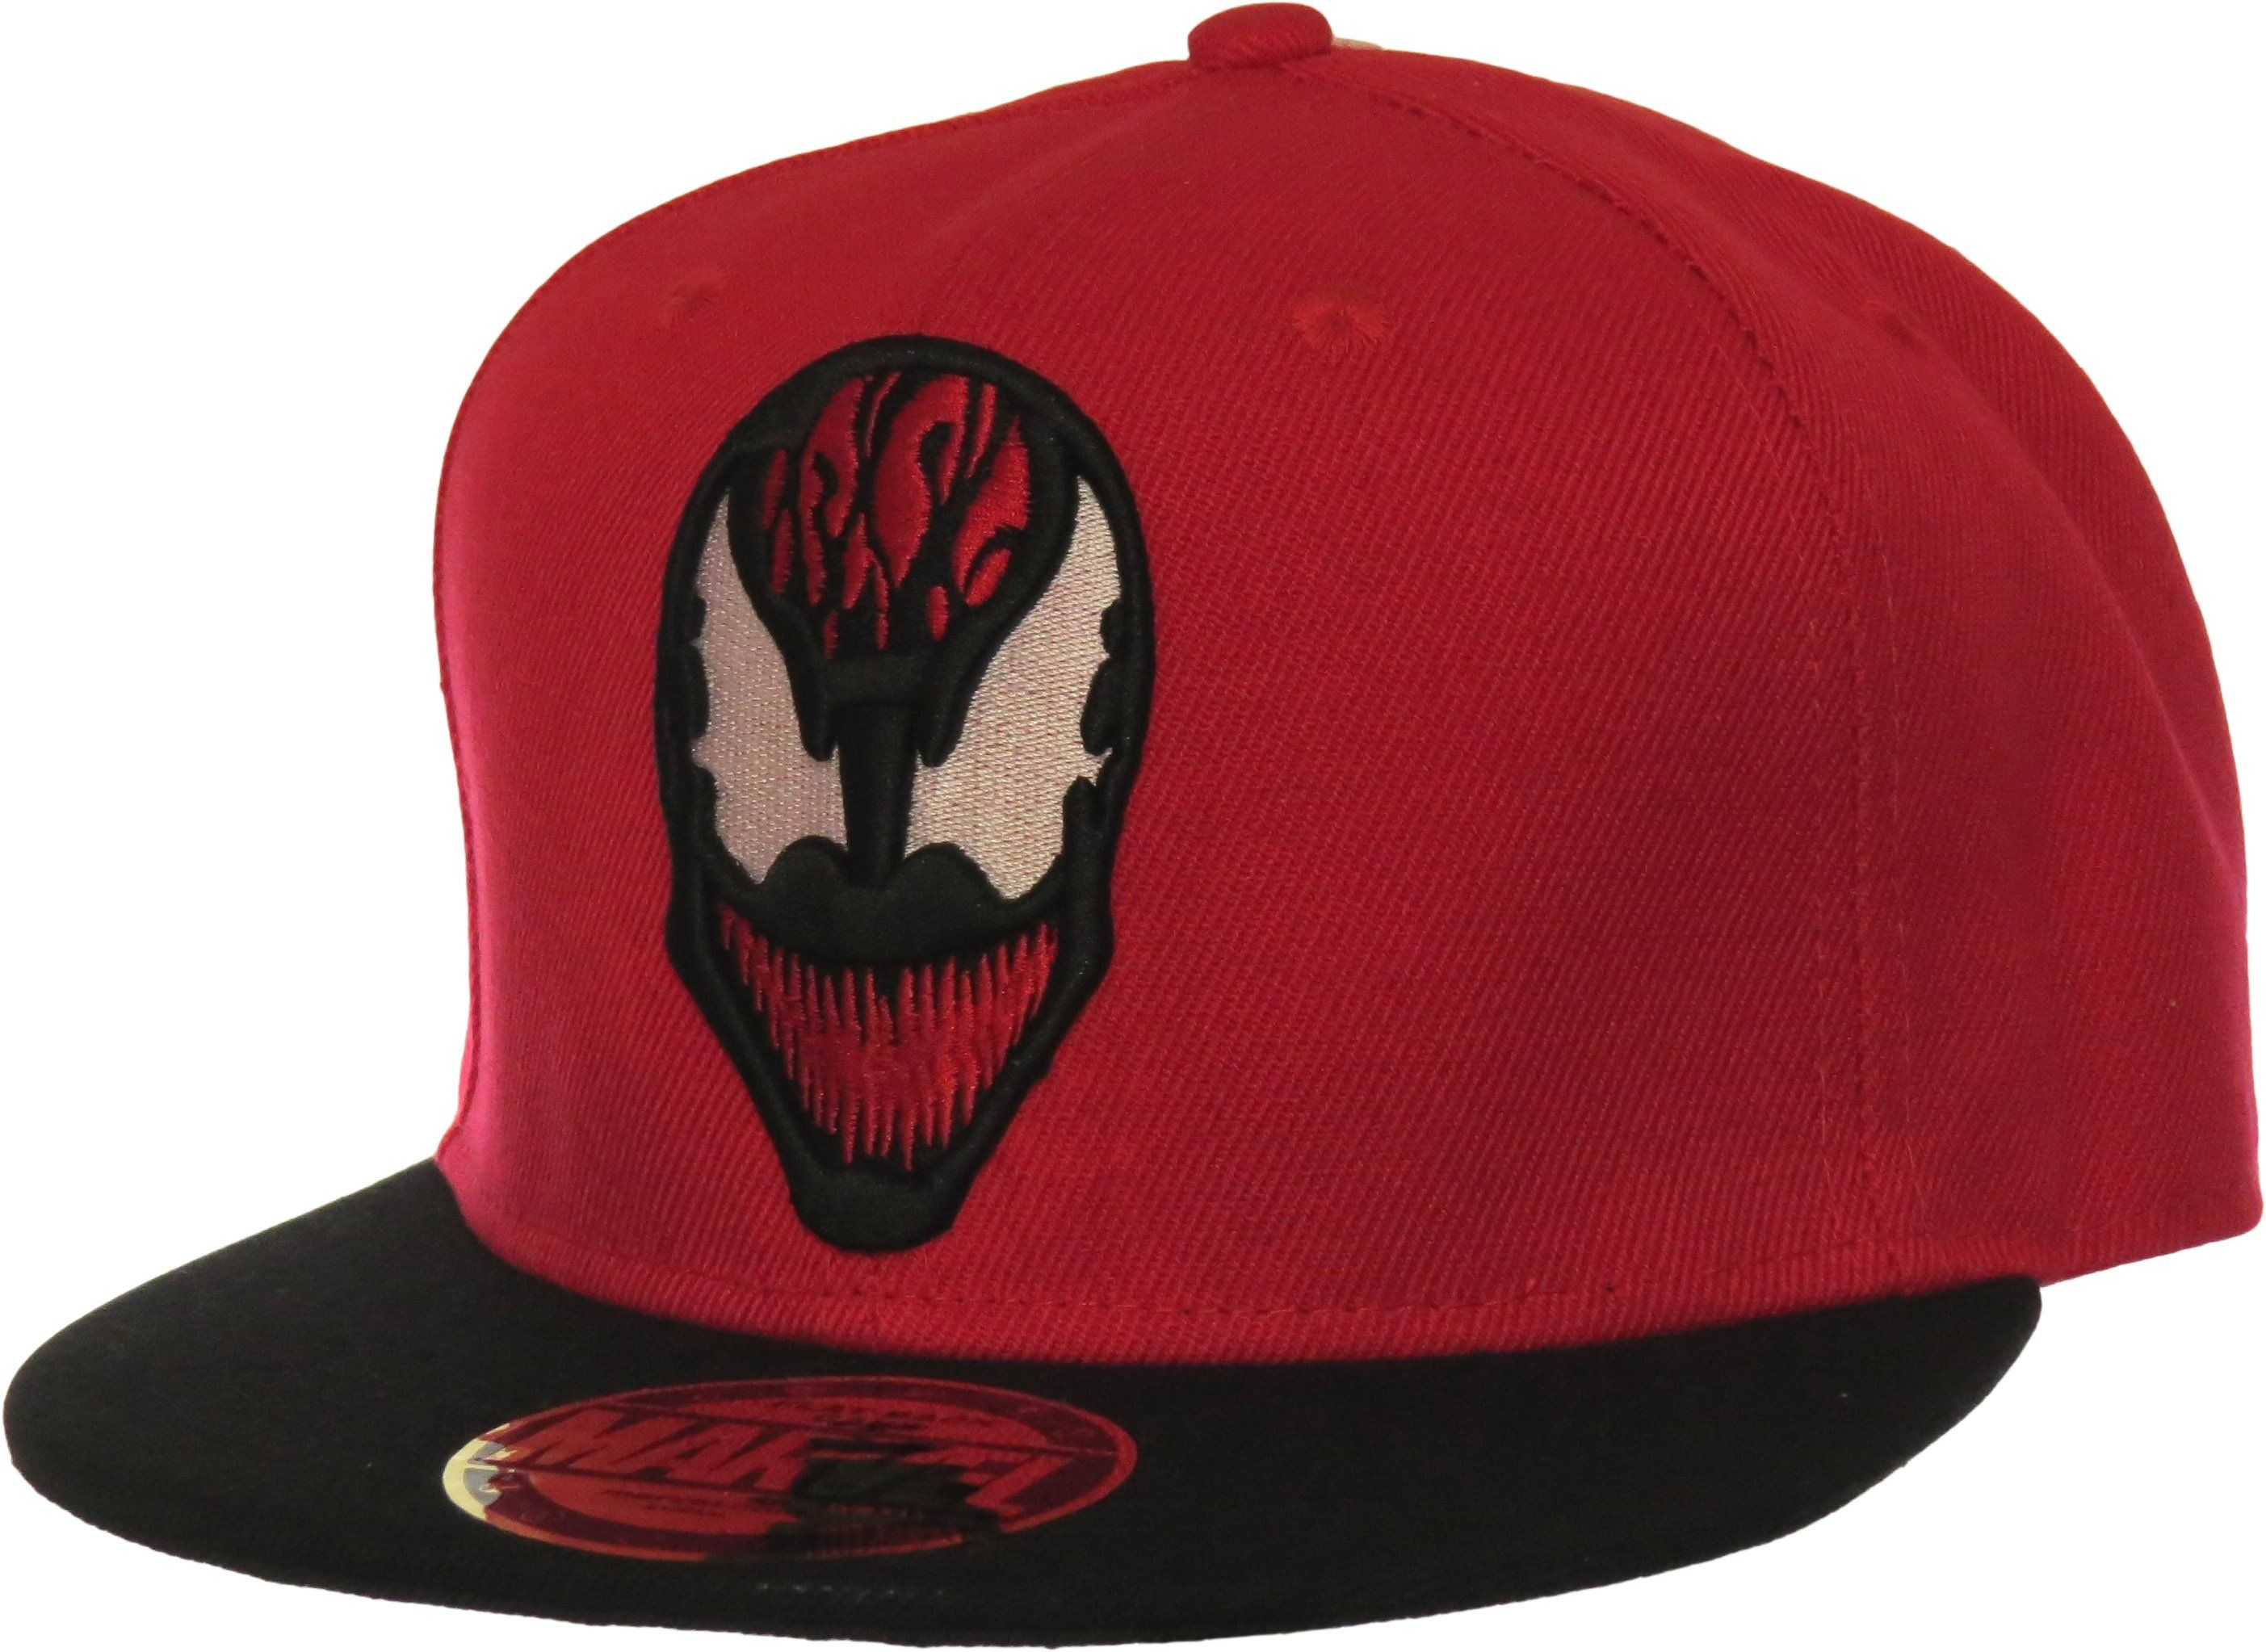 Marvel Comics Carnage Snapback Cap Red With The Carnage Front Image The Carnage Rear Logo And The Black Visor And Snap Black Snapback Snapback Snapback Cap